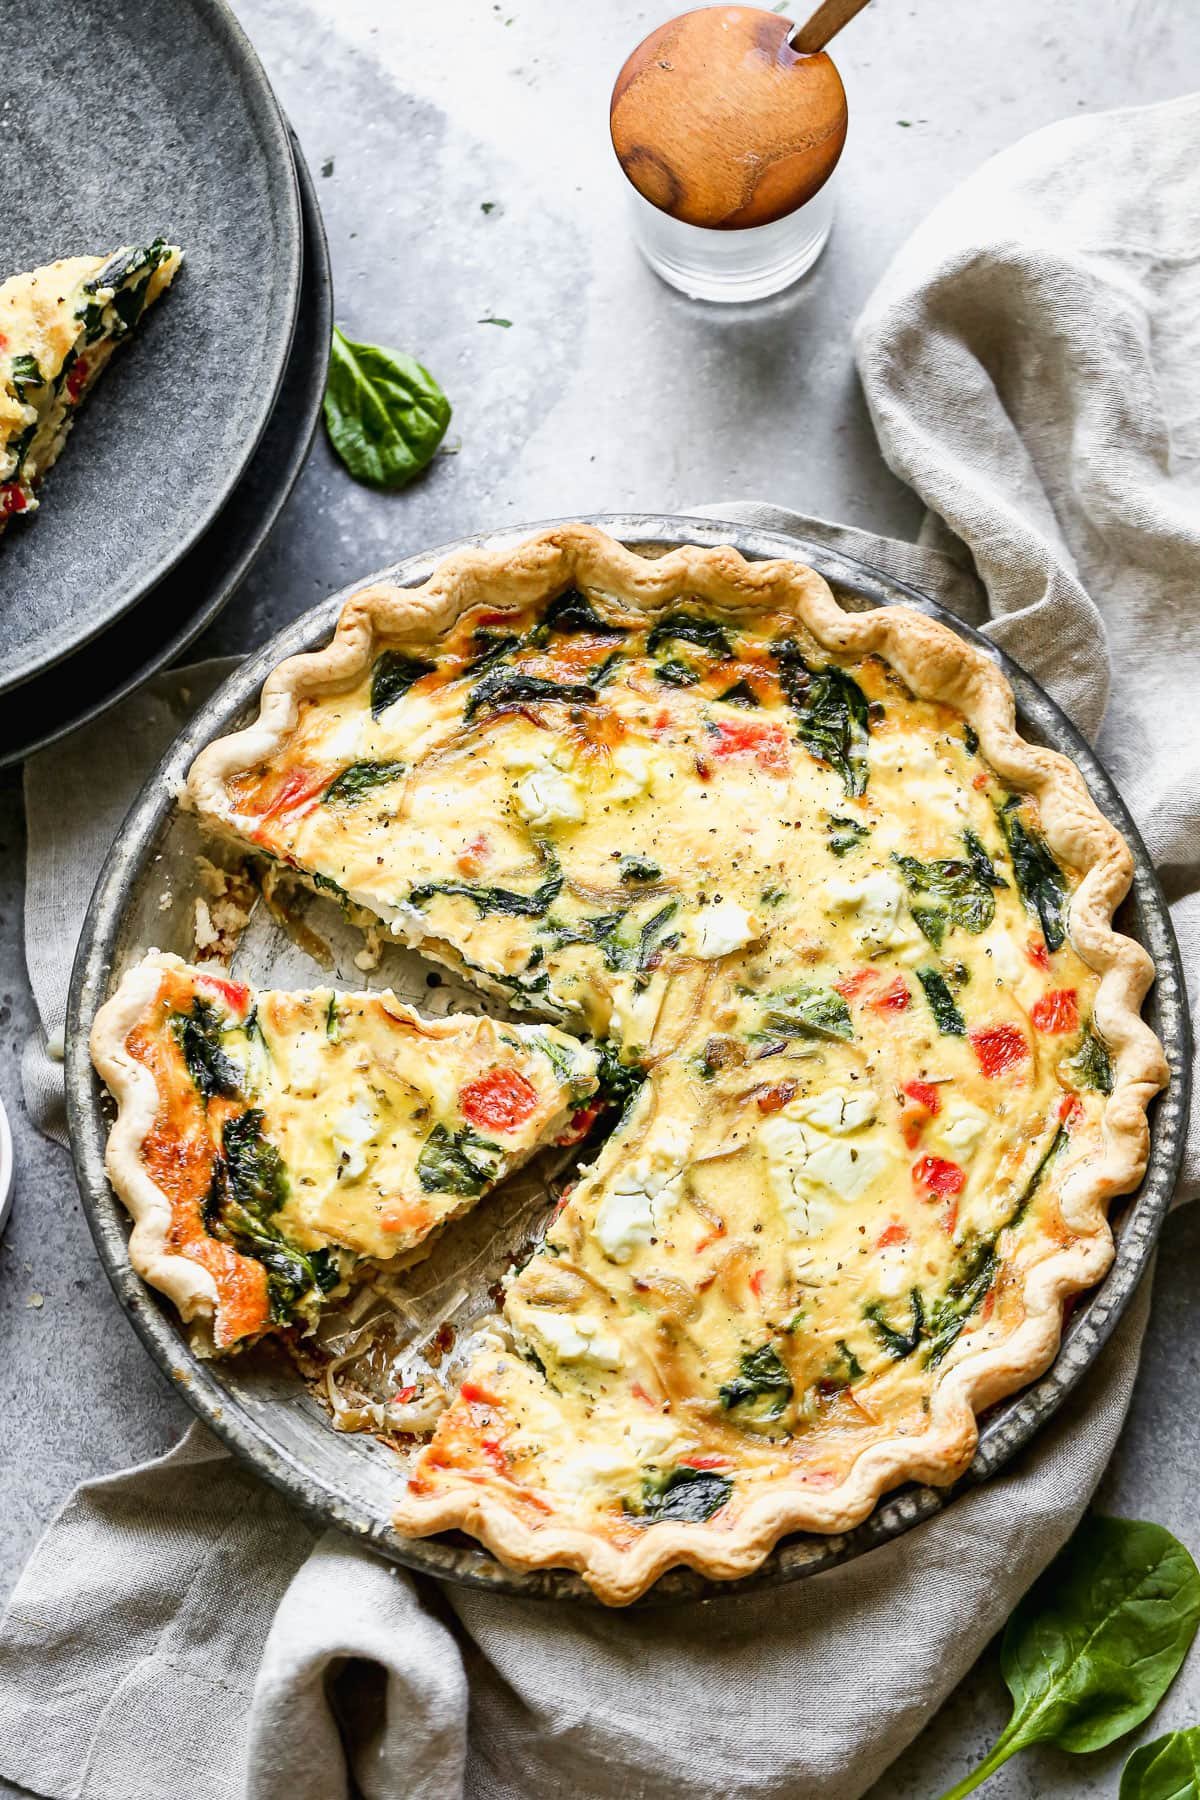 Goat cheese quiche with vegetables